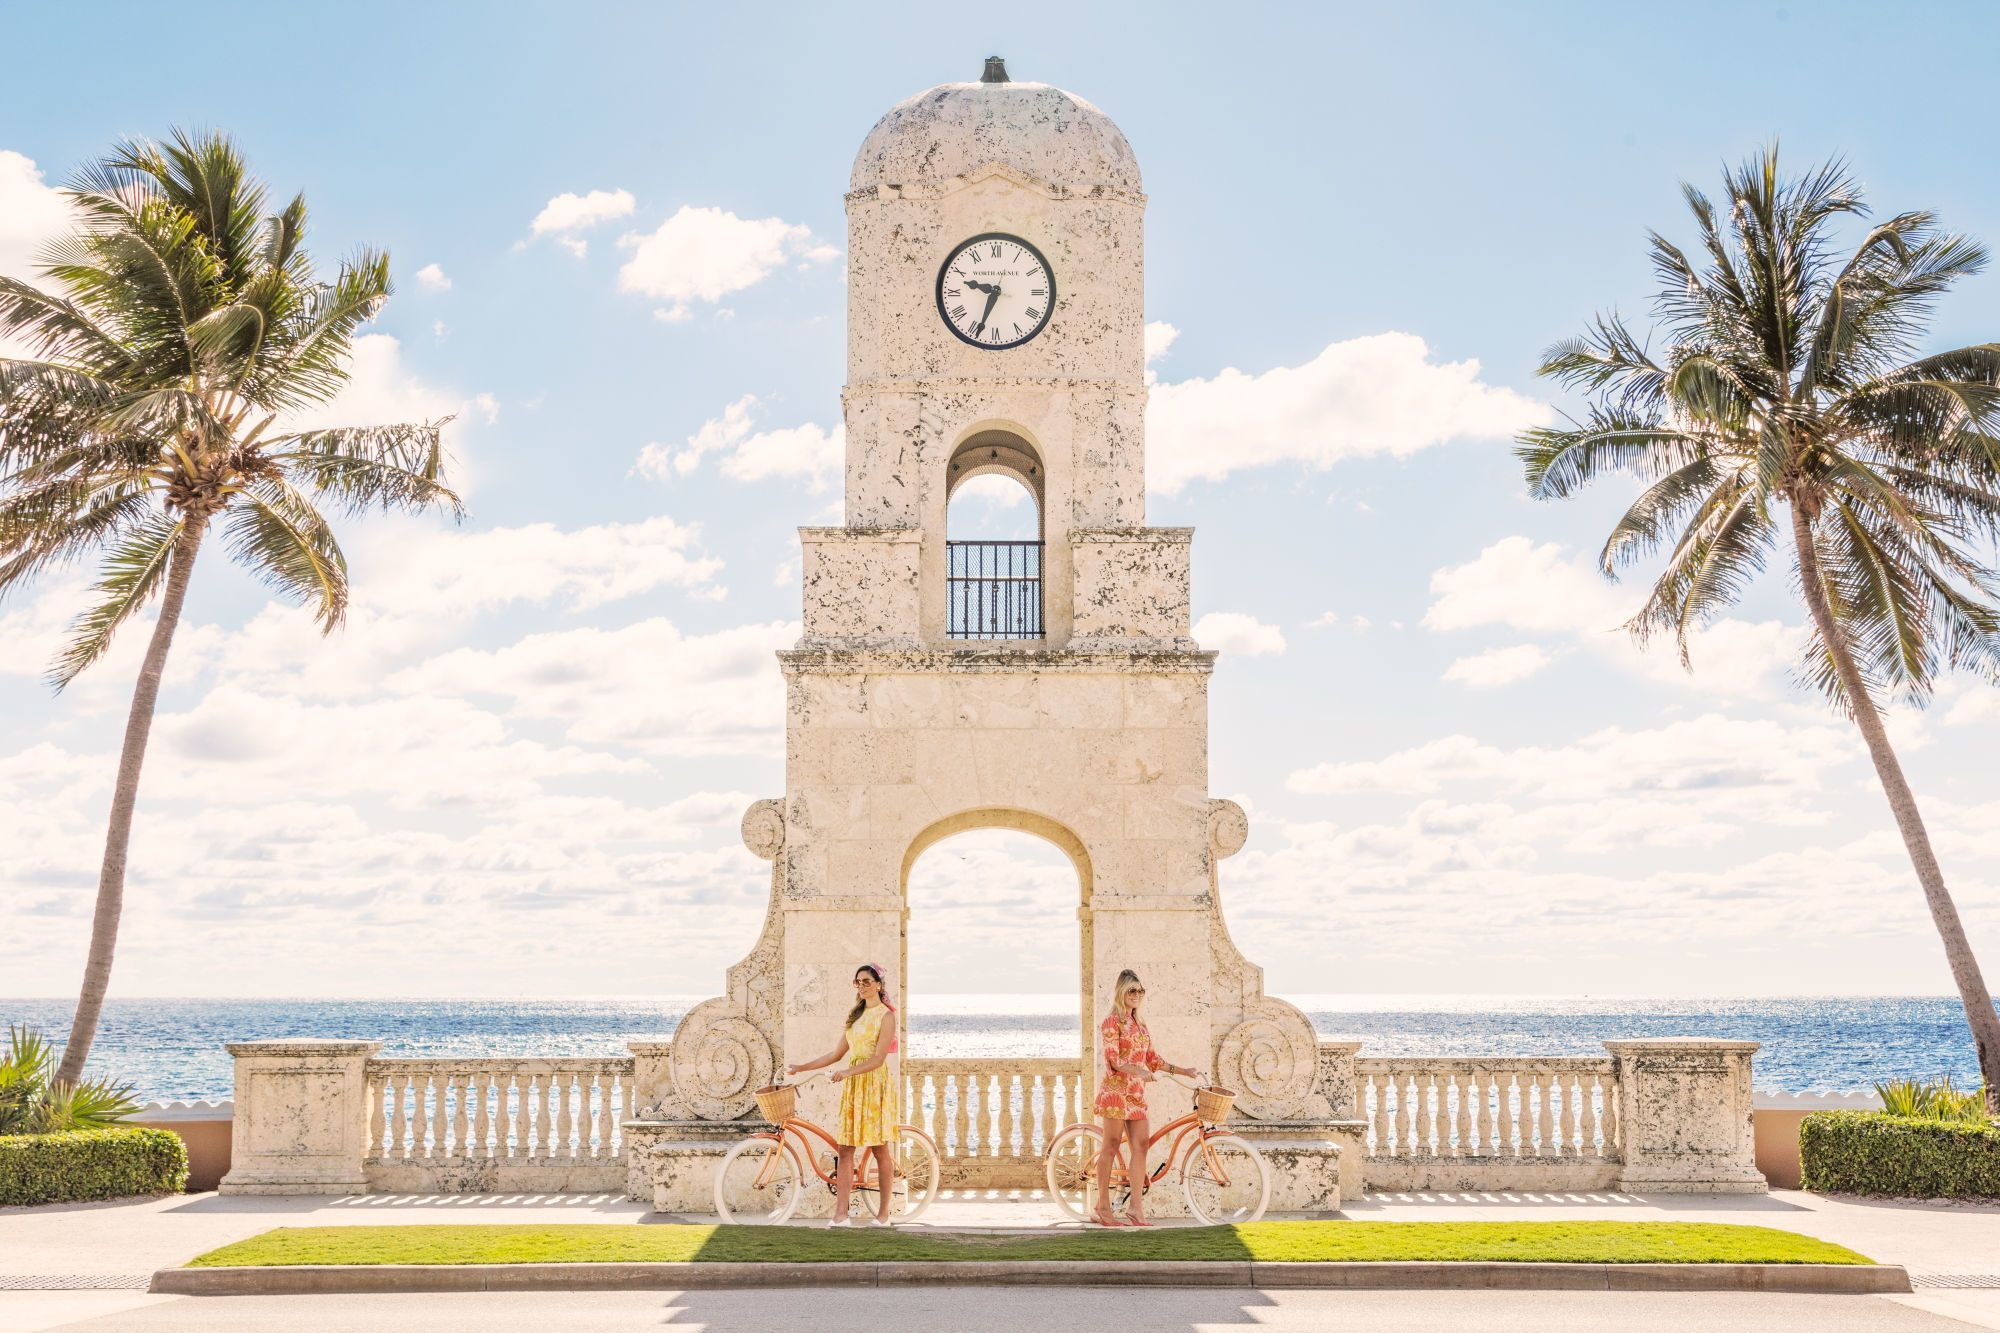 Behind The Scenes The Making Of Gray Malin In Palm Beach Palm Beach Gray Malin Clock Tower